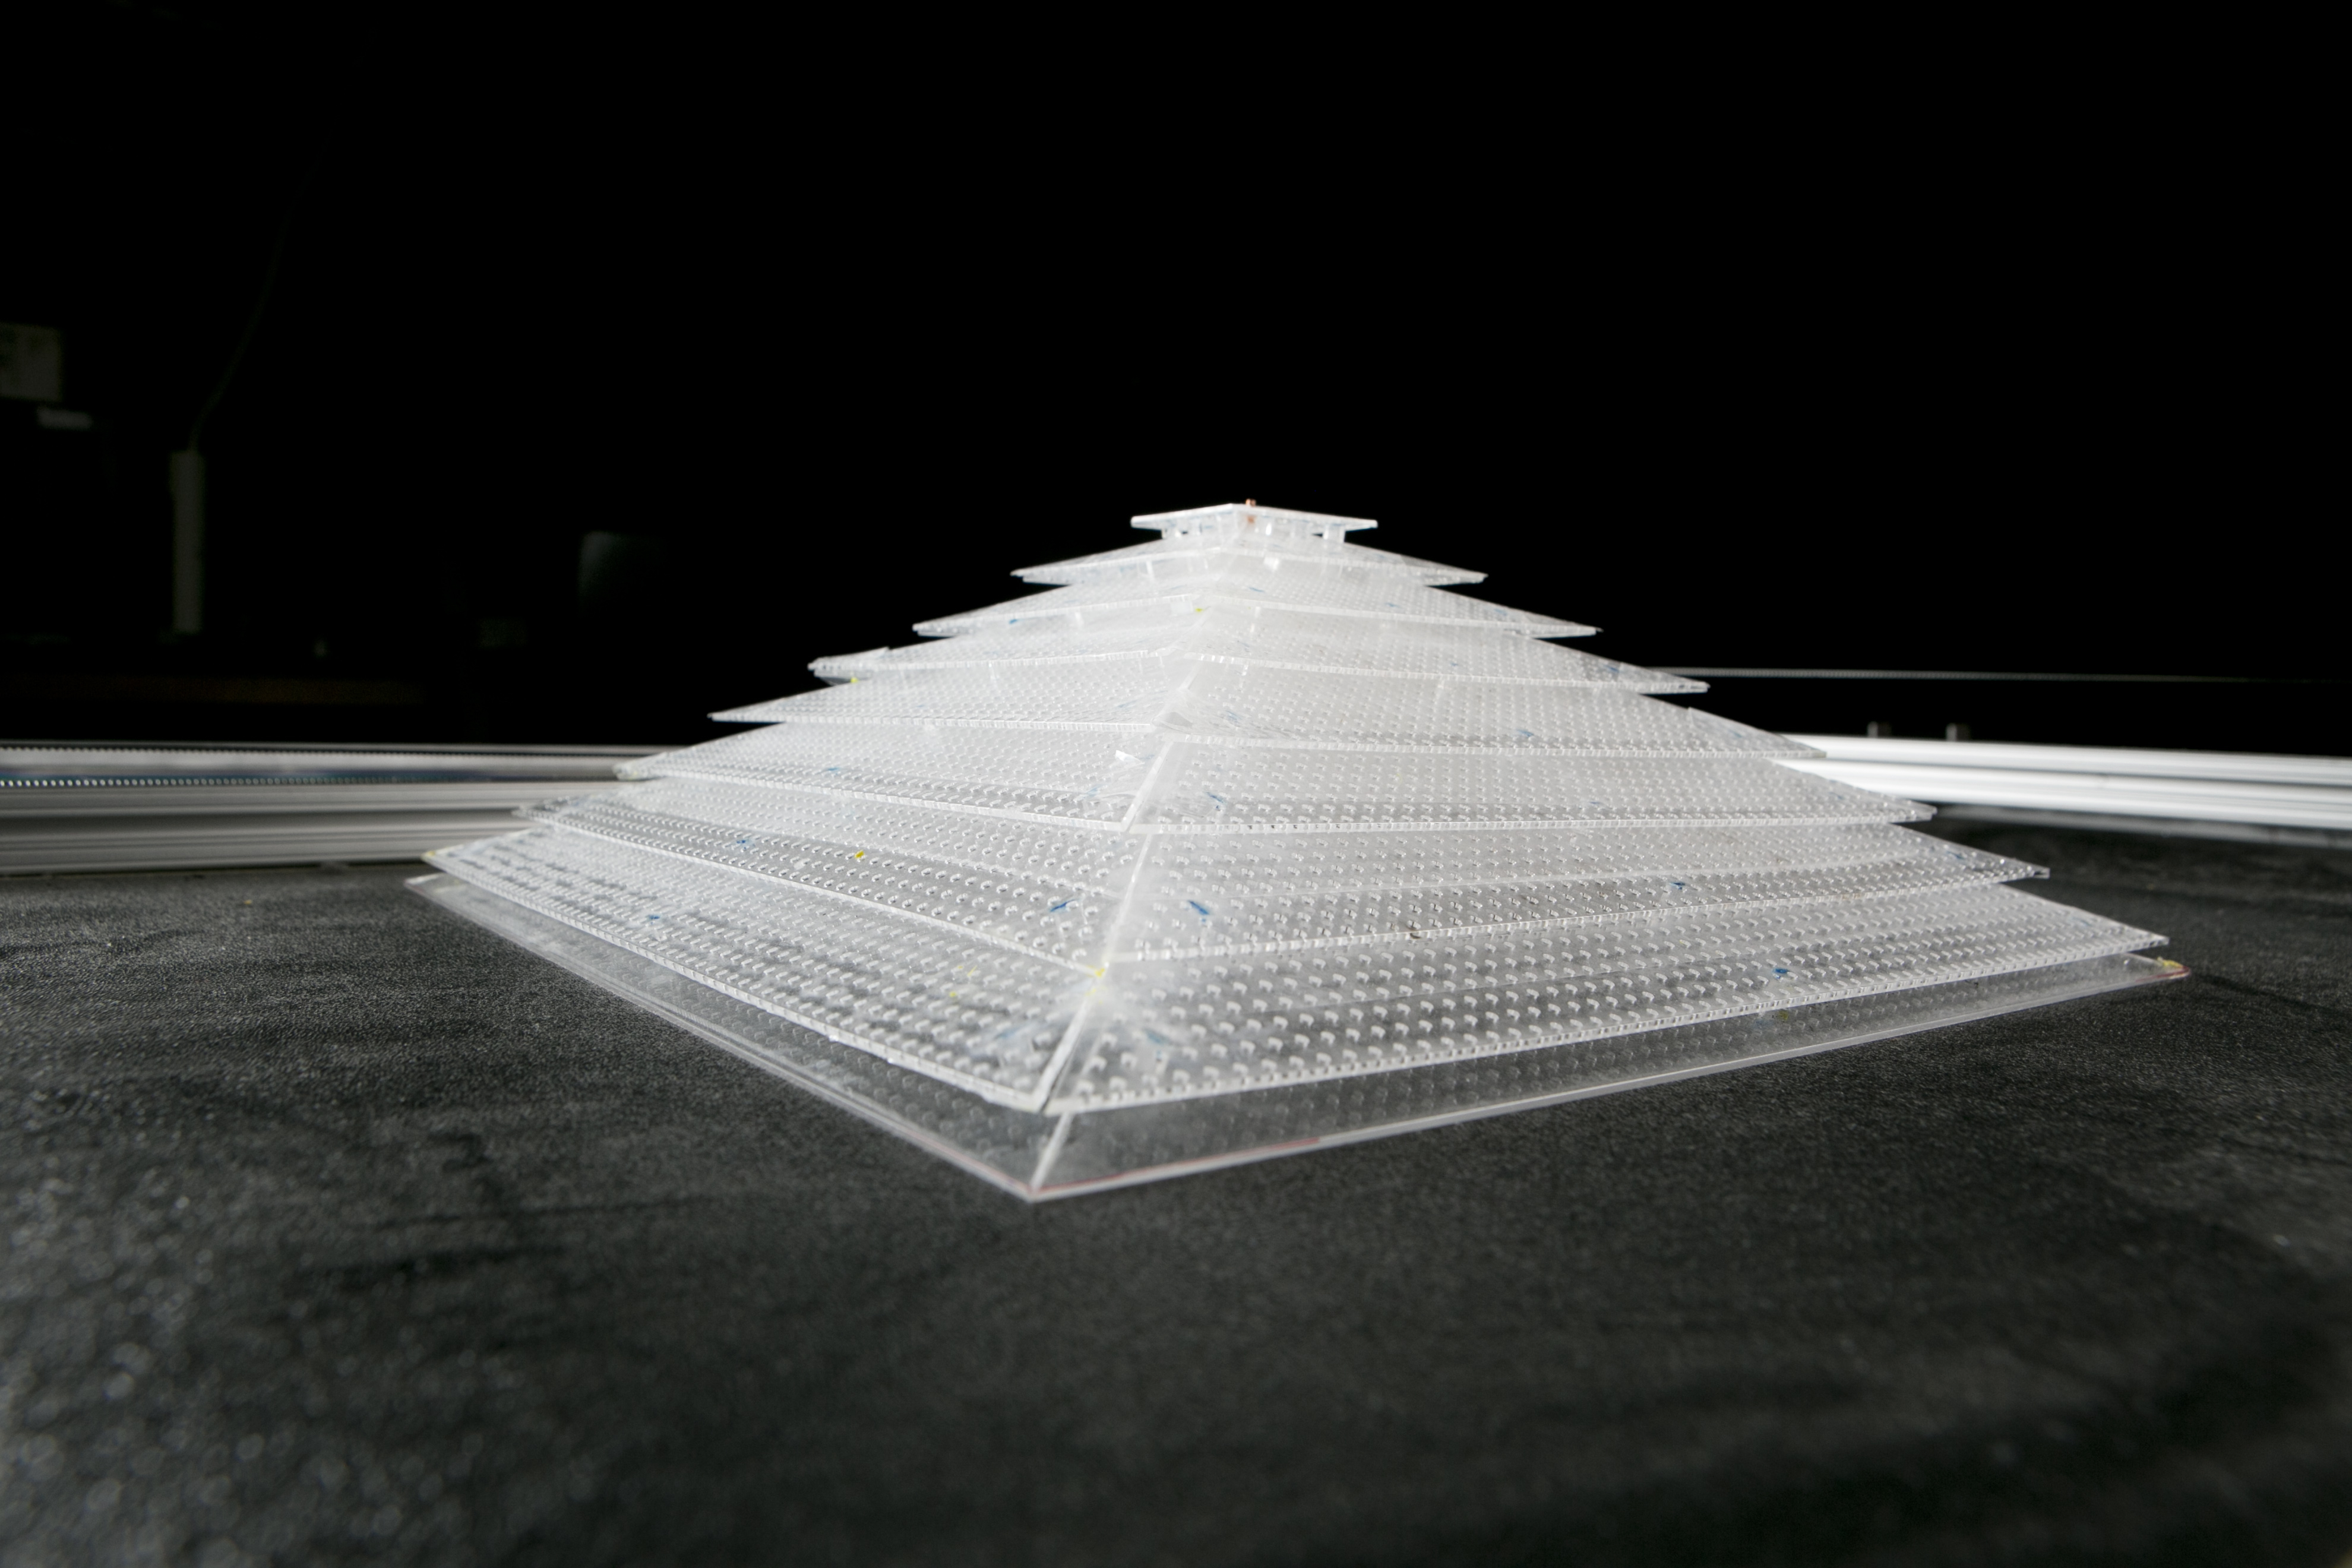 3-D acoustic cloaking device